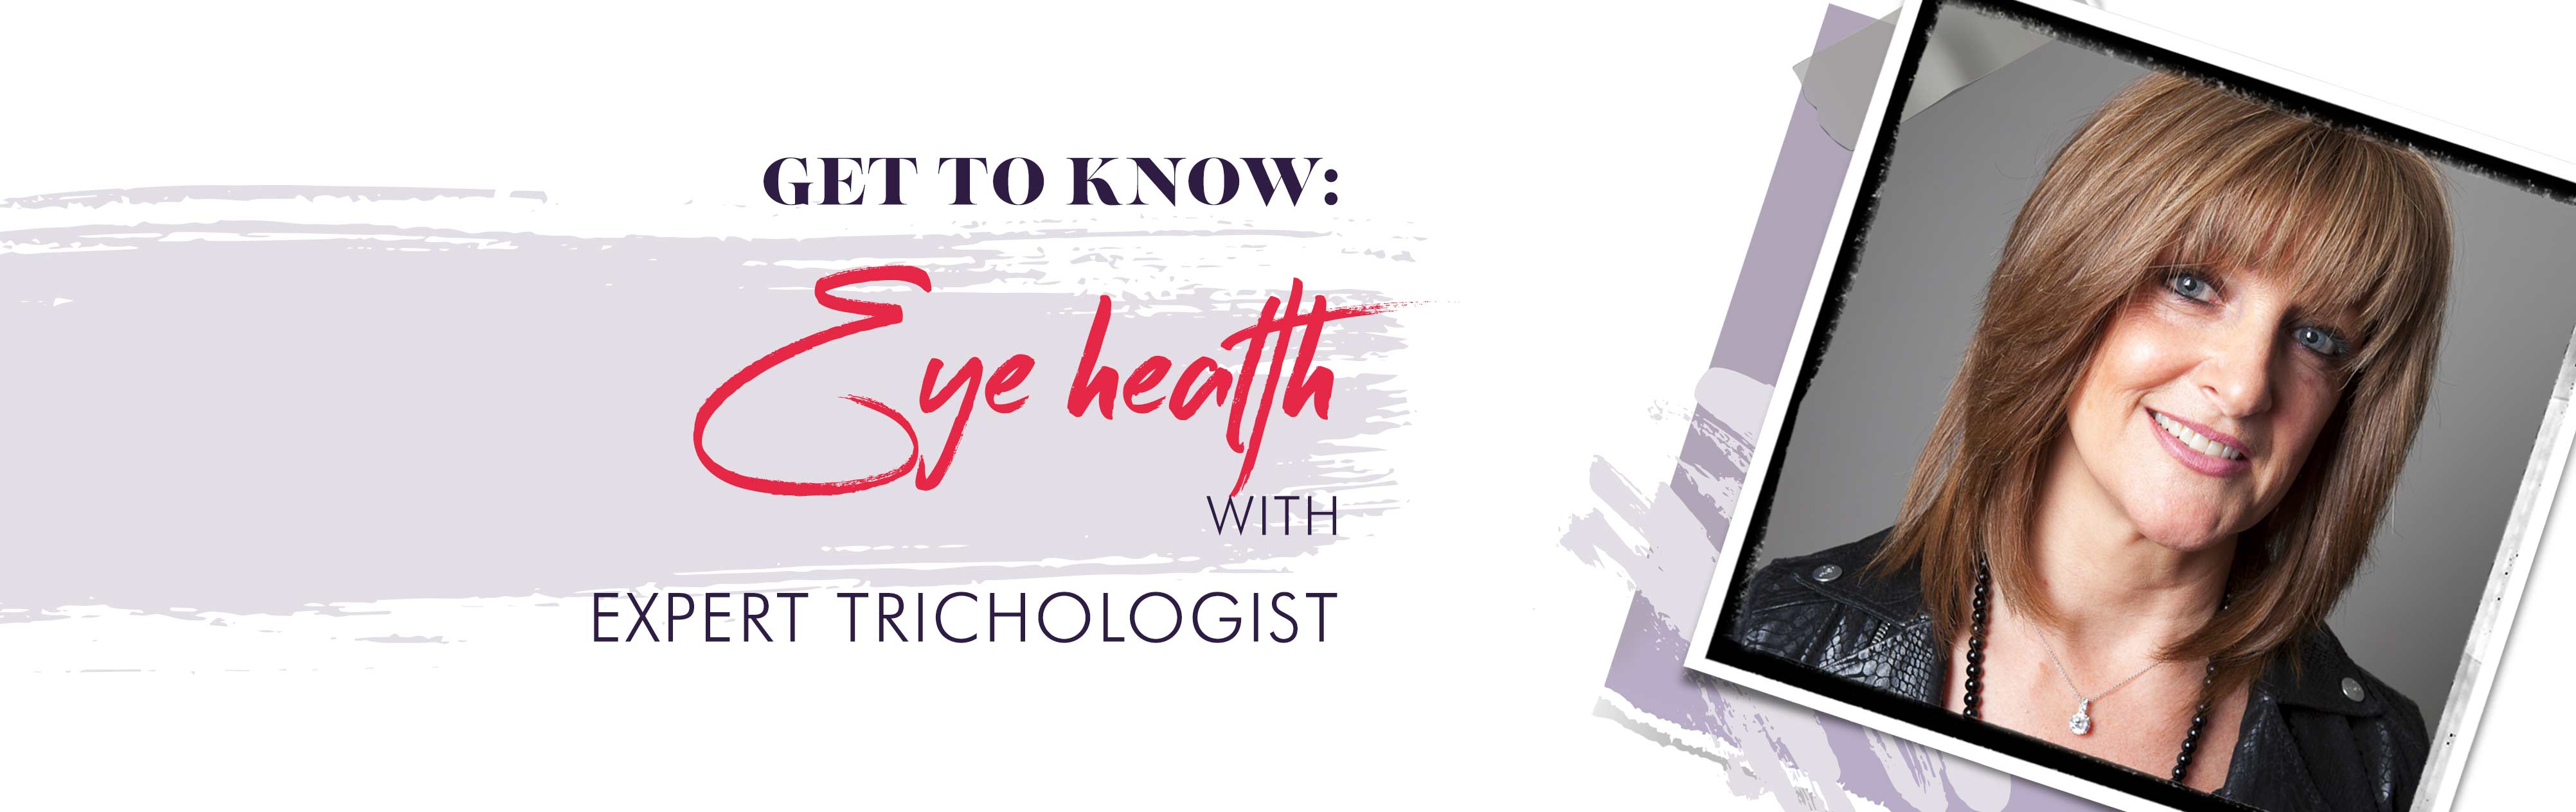 Get to know: Eye health with Expert Trichologist